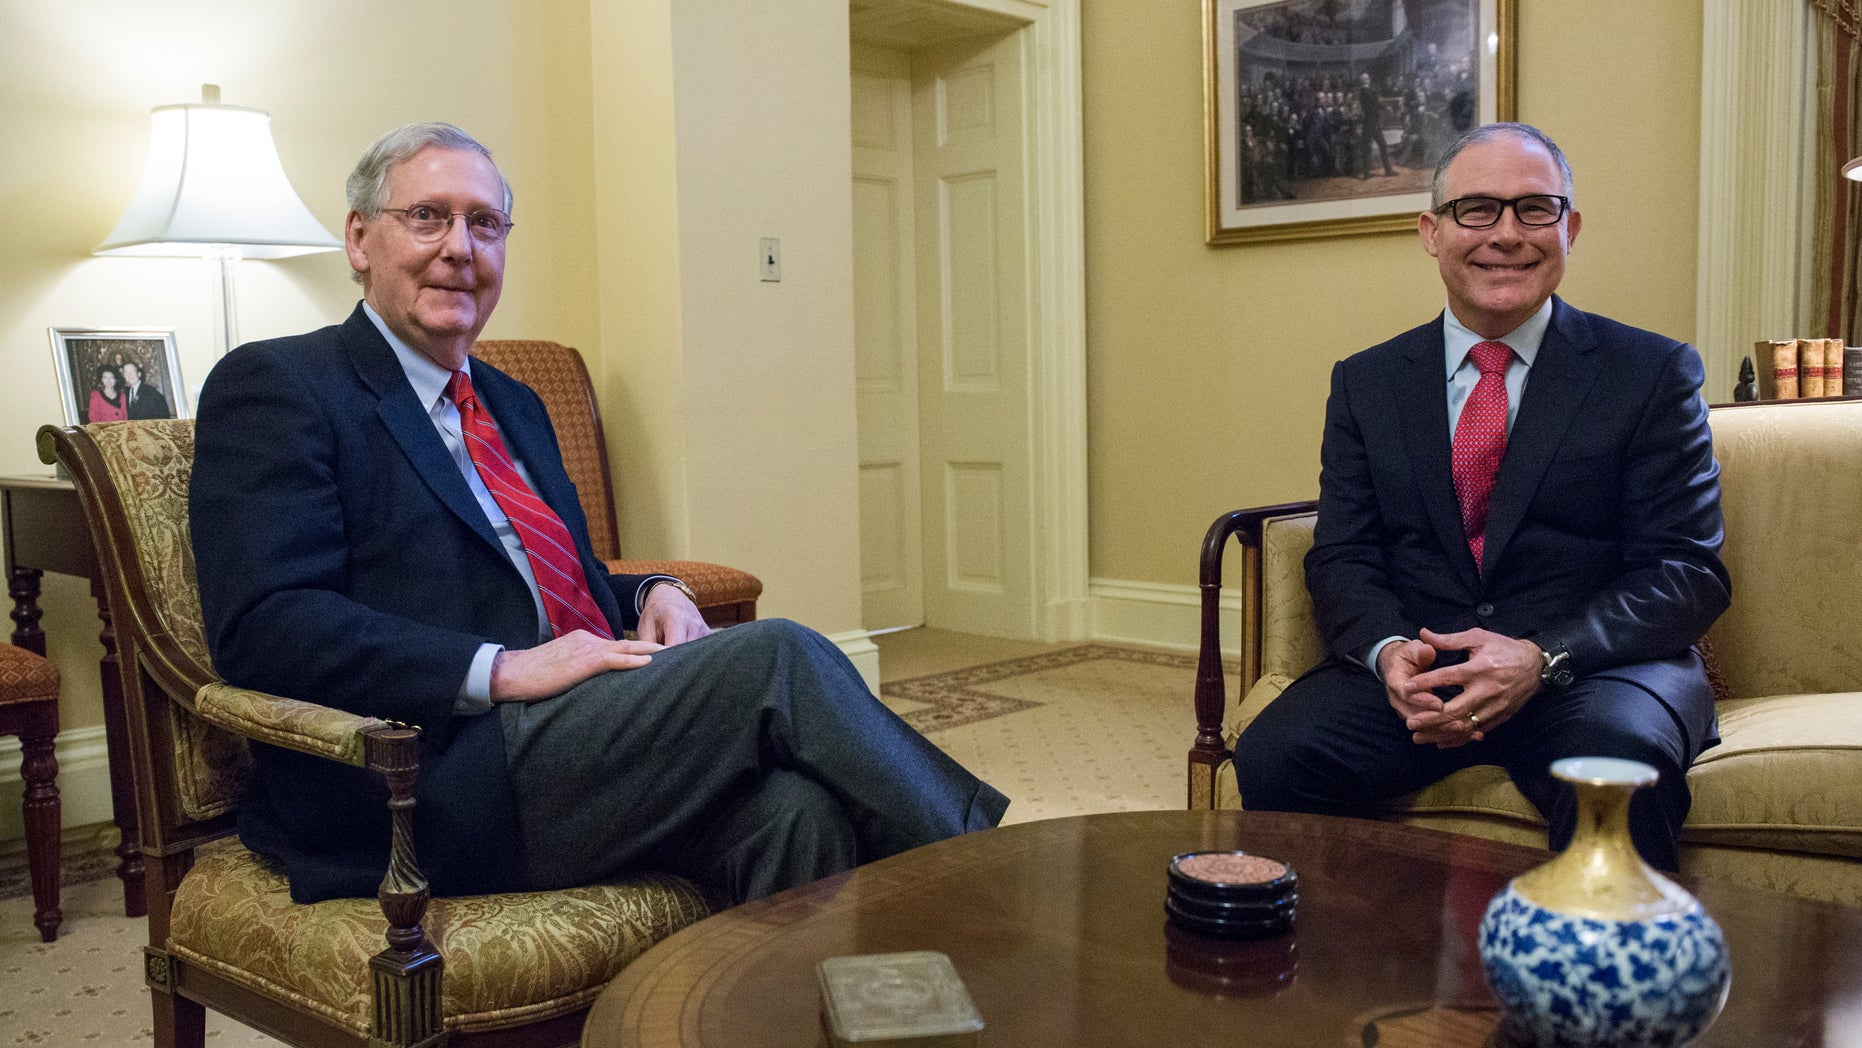 Jan. 6, 2017: Senate Majority Leader Mitch McConnell, R-Ky., left, meets with Environmental Protection Agency (EPA) Administrator-designate Scott Pruitt, right, on Capitol Hill in Washington.